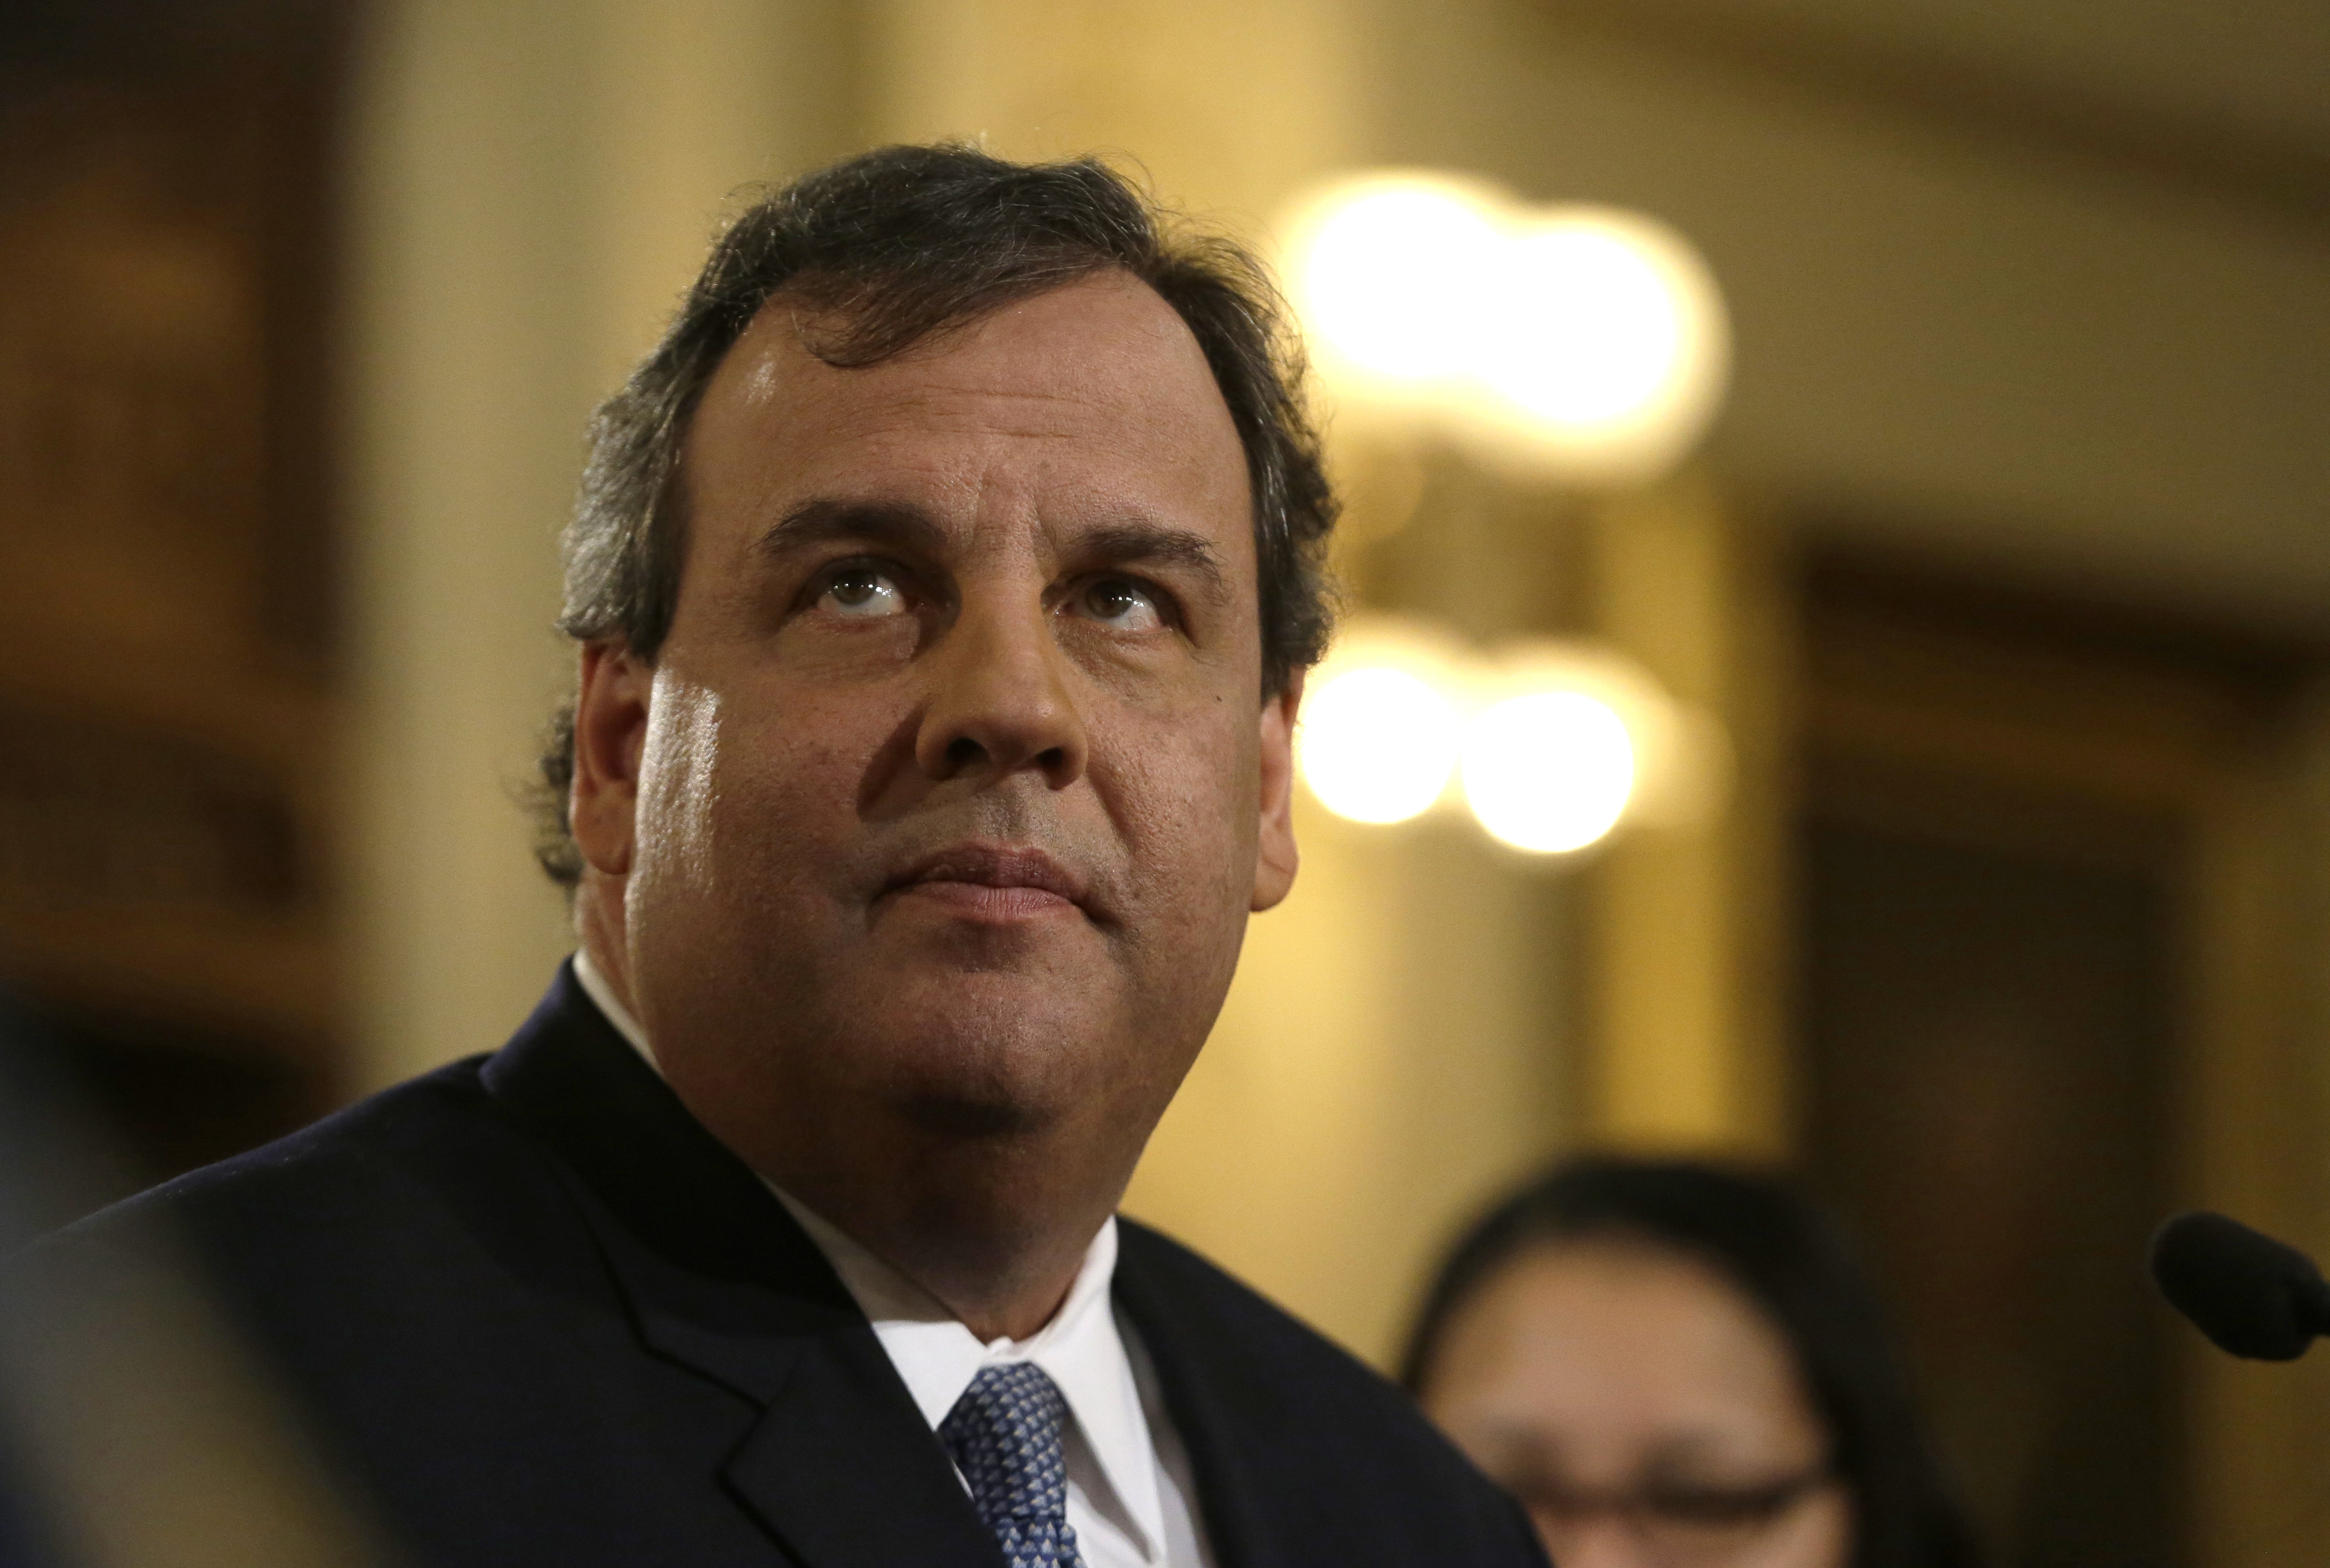 New Jersey Gov. Chris Christie is caught up in a scandal involving the exacting of retribution on political opponents. (AP photo)